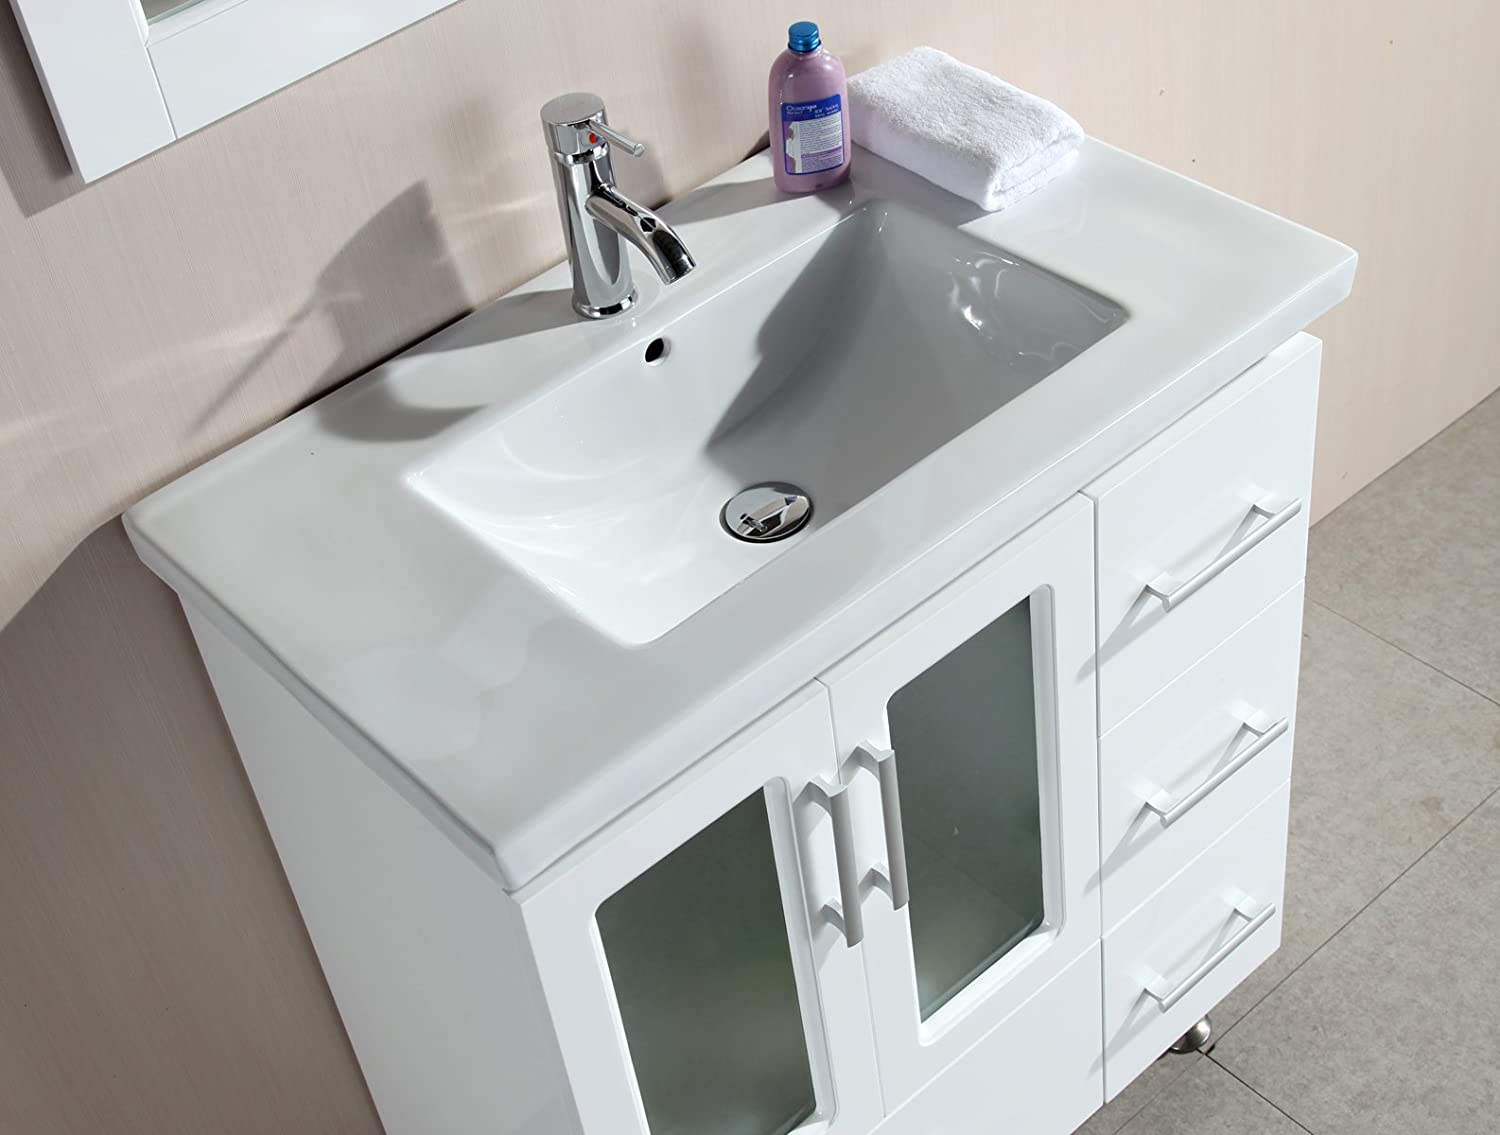 Design Element Stanton Single Drop In Sink Vanity Set With White Finish,  32 Inch     Amazon.com